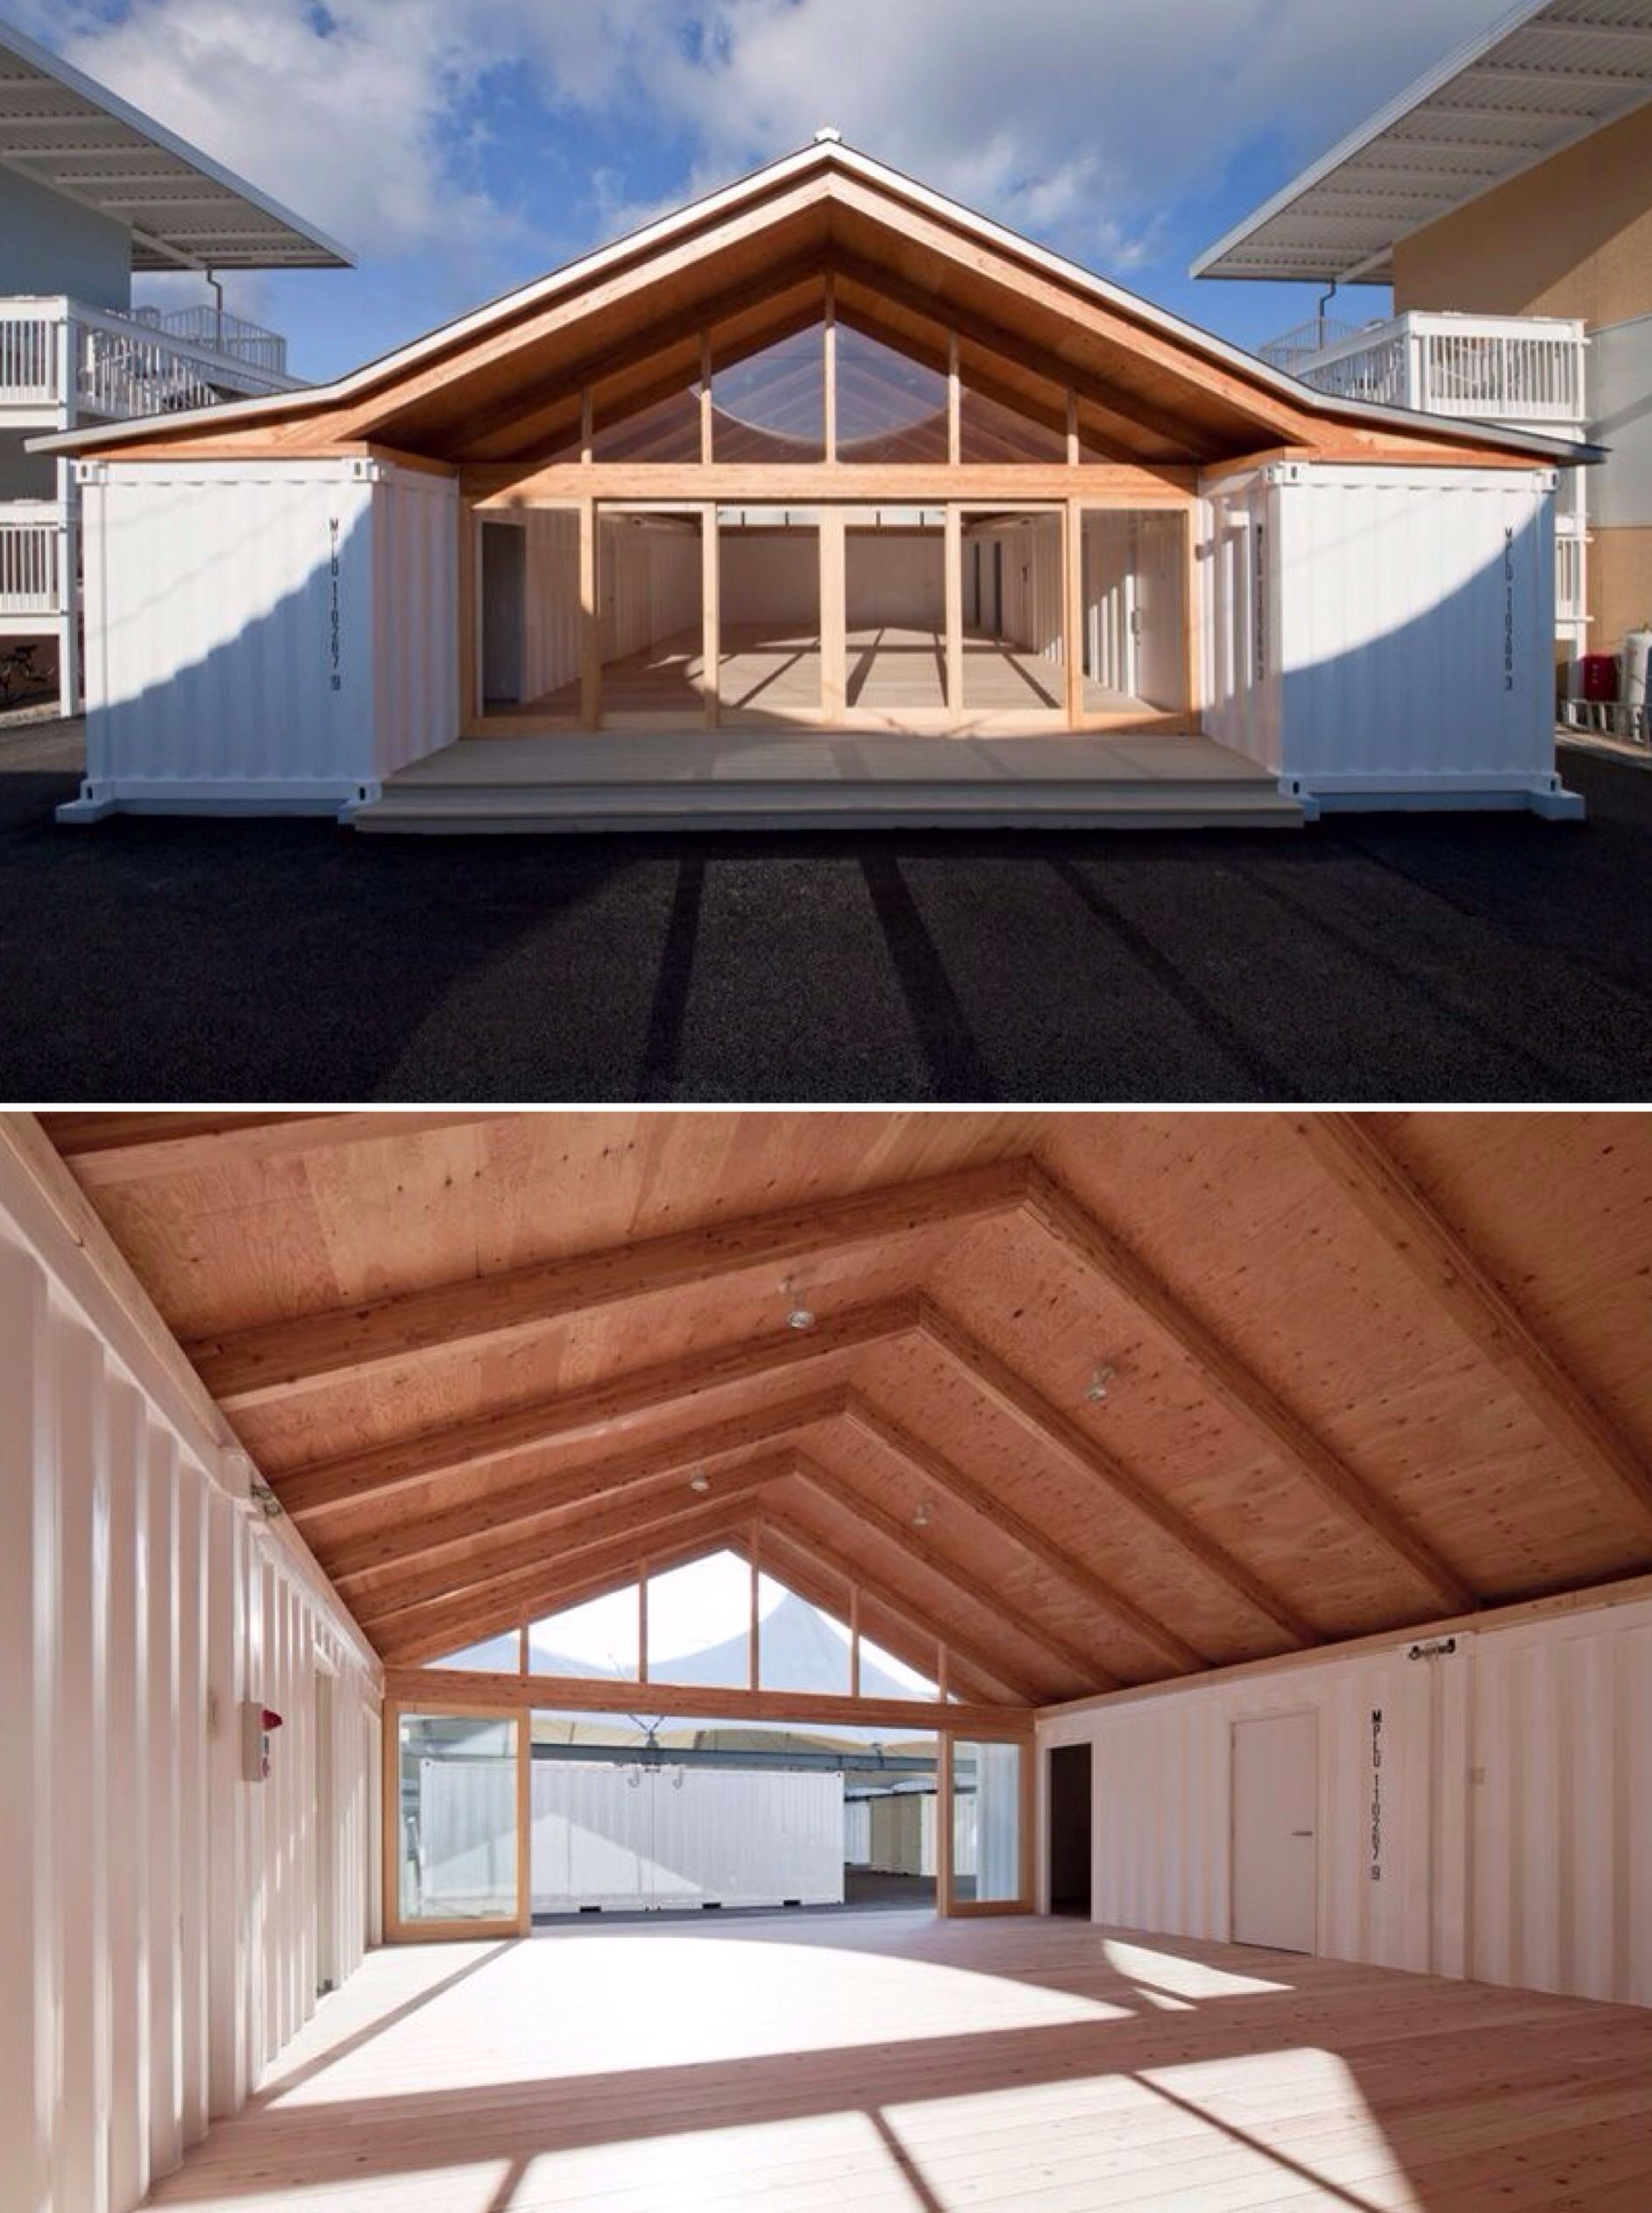 How To Build Your Own Shipping Container Home Shigeru